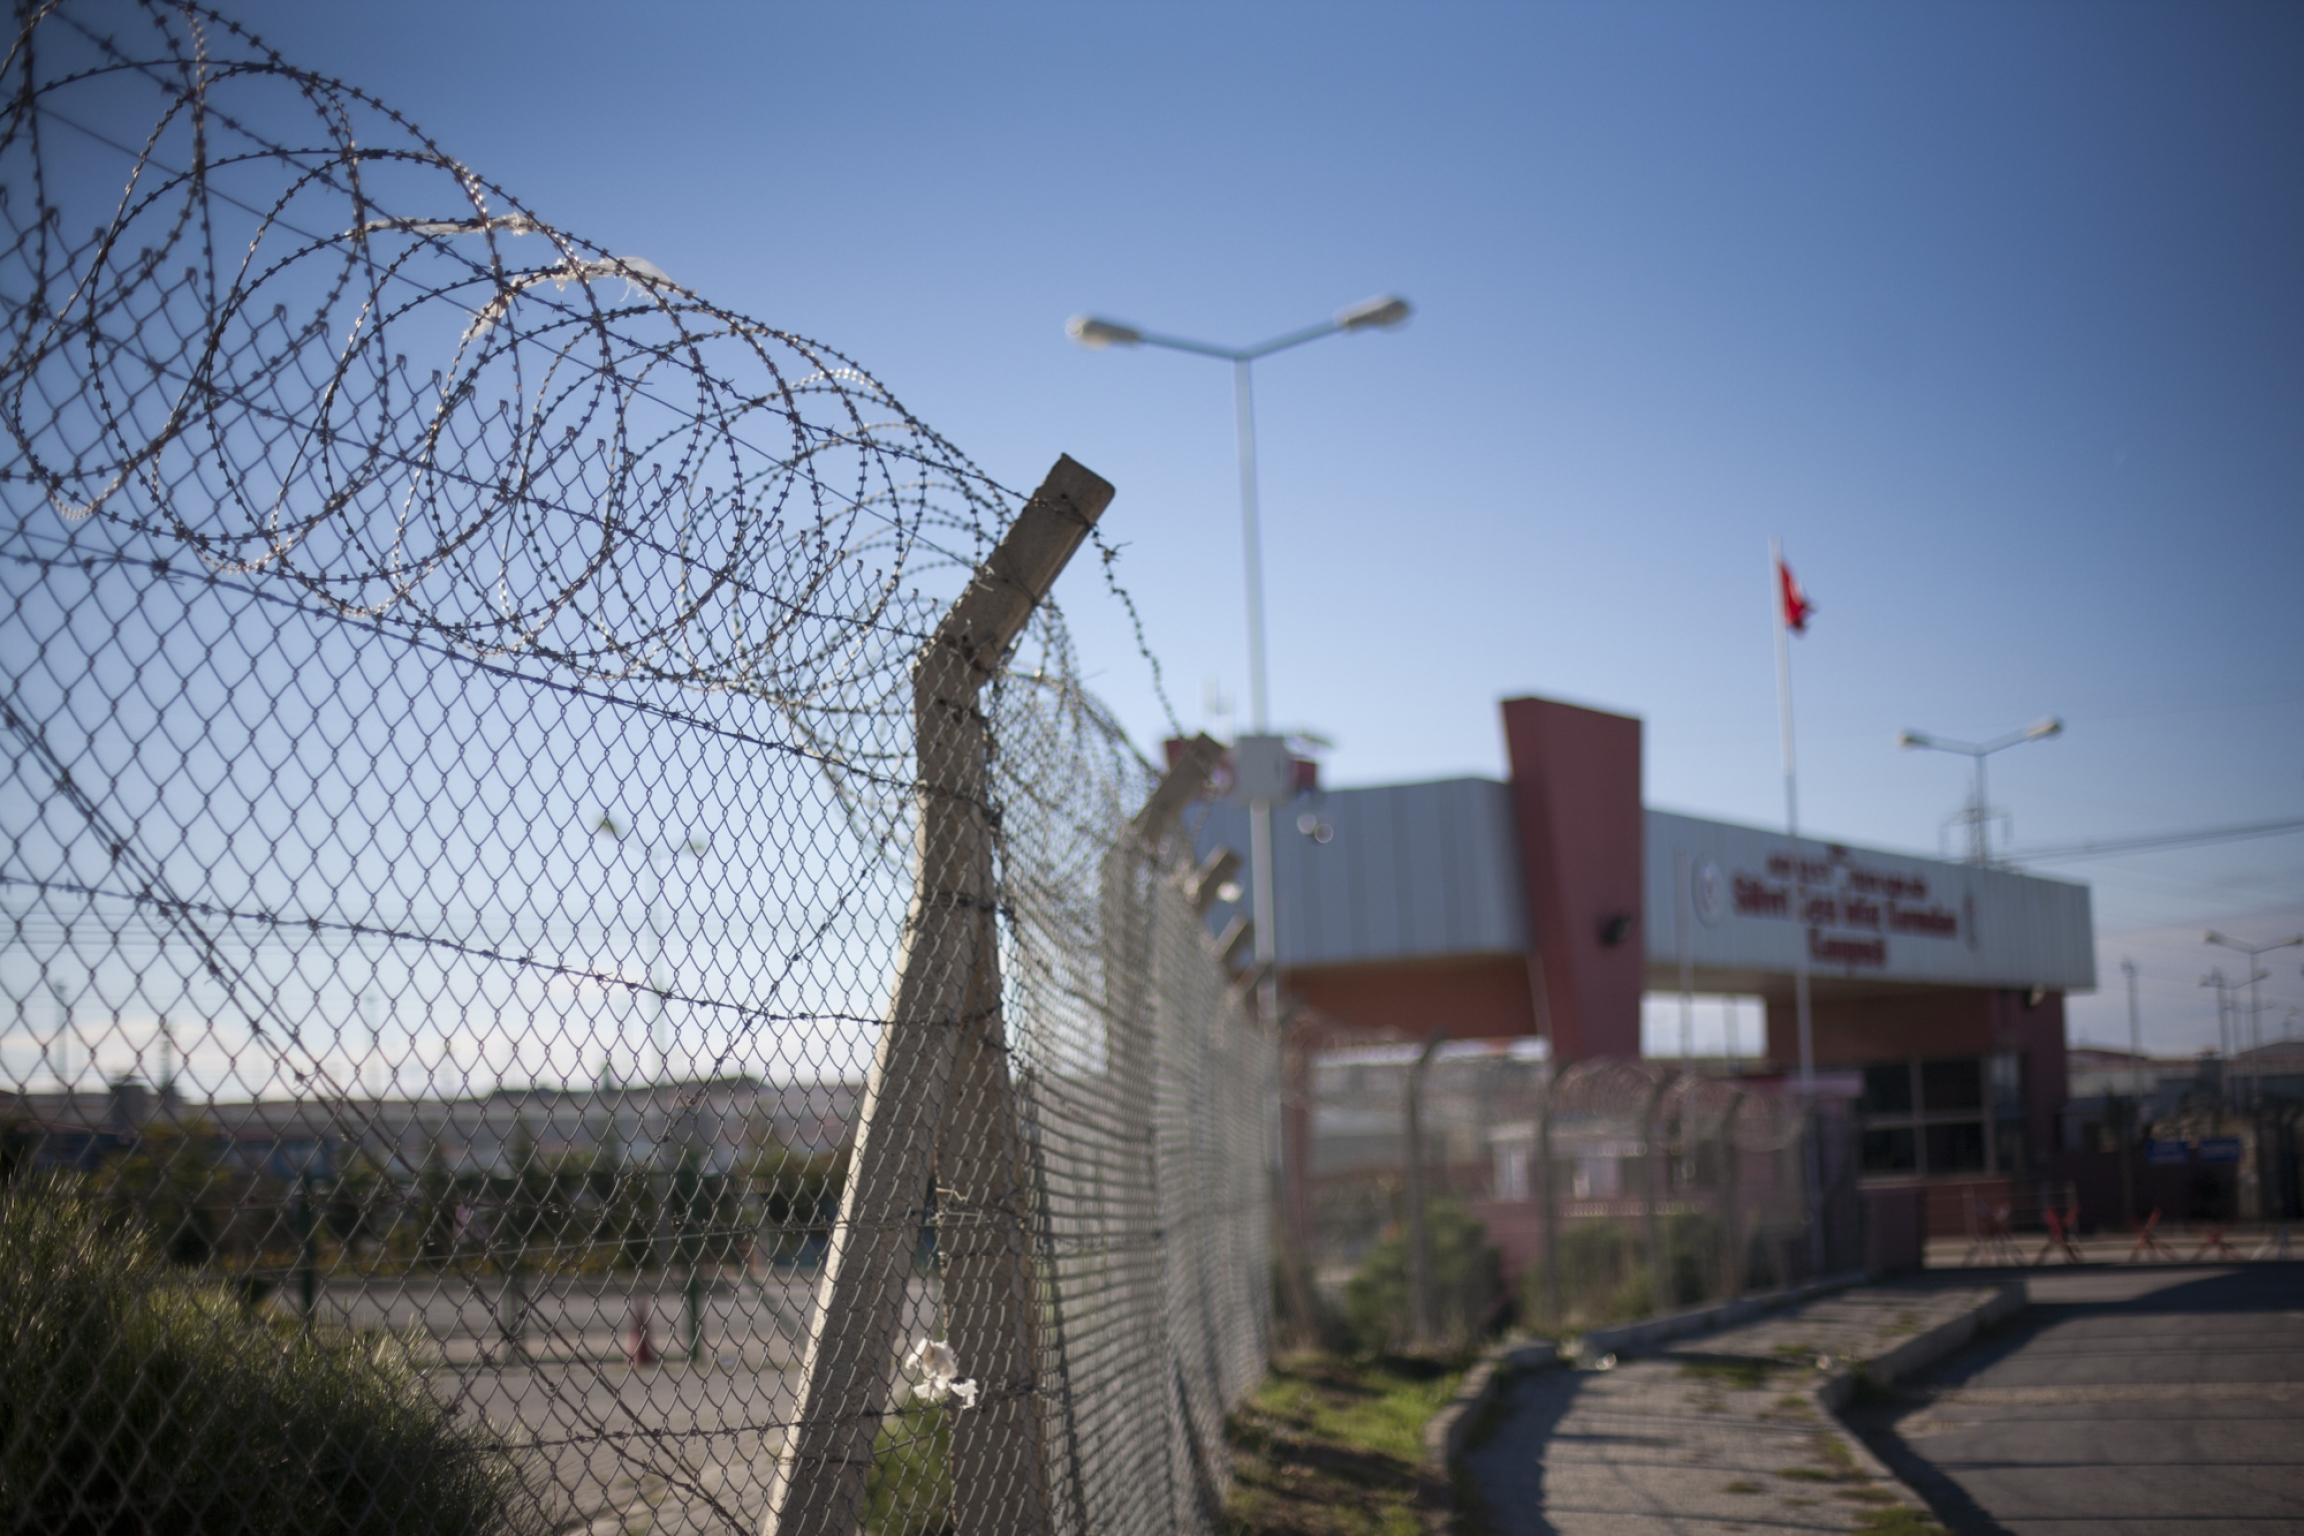 Entrance to Silivri Prison outside of Istanbul, where thousands of political prisoners are held.